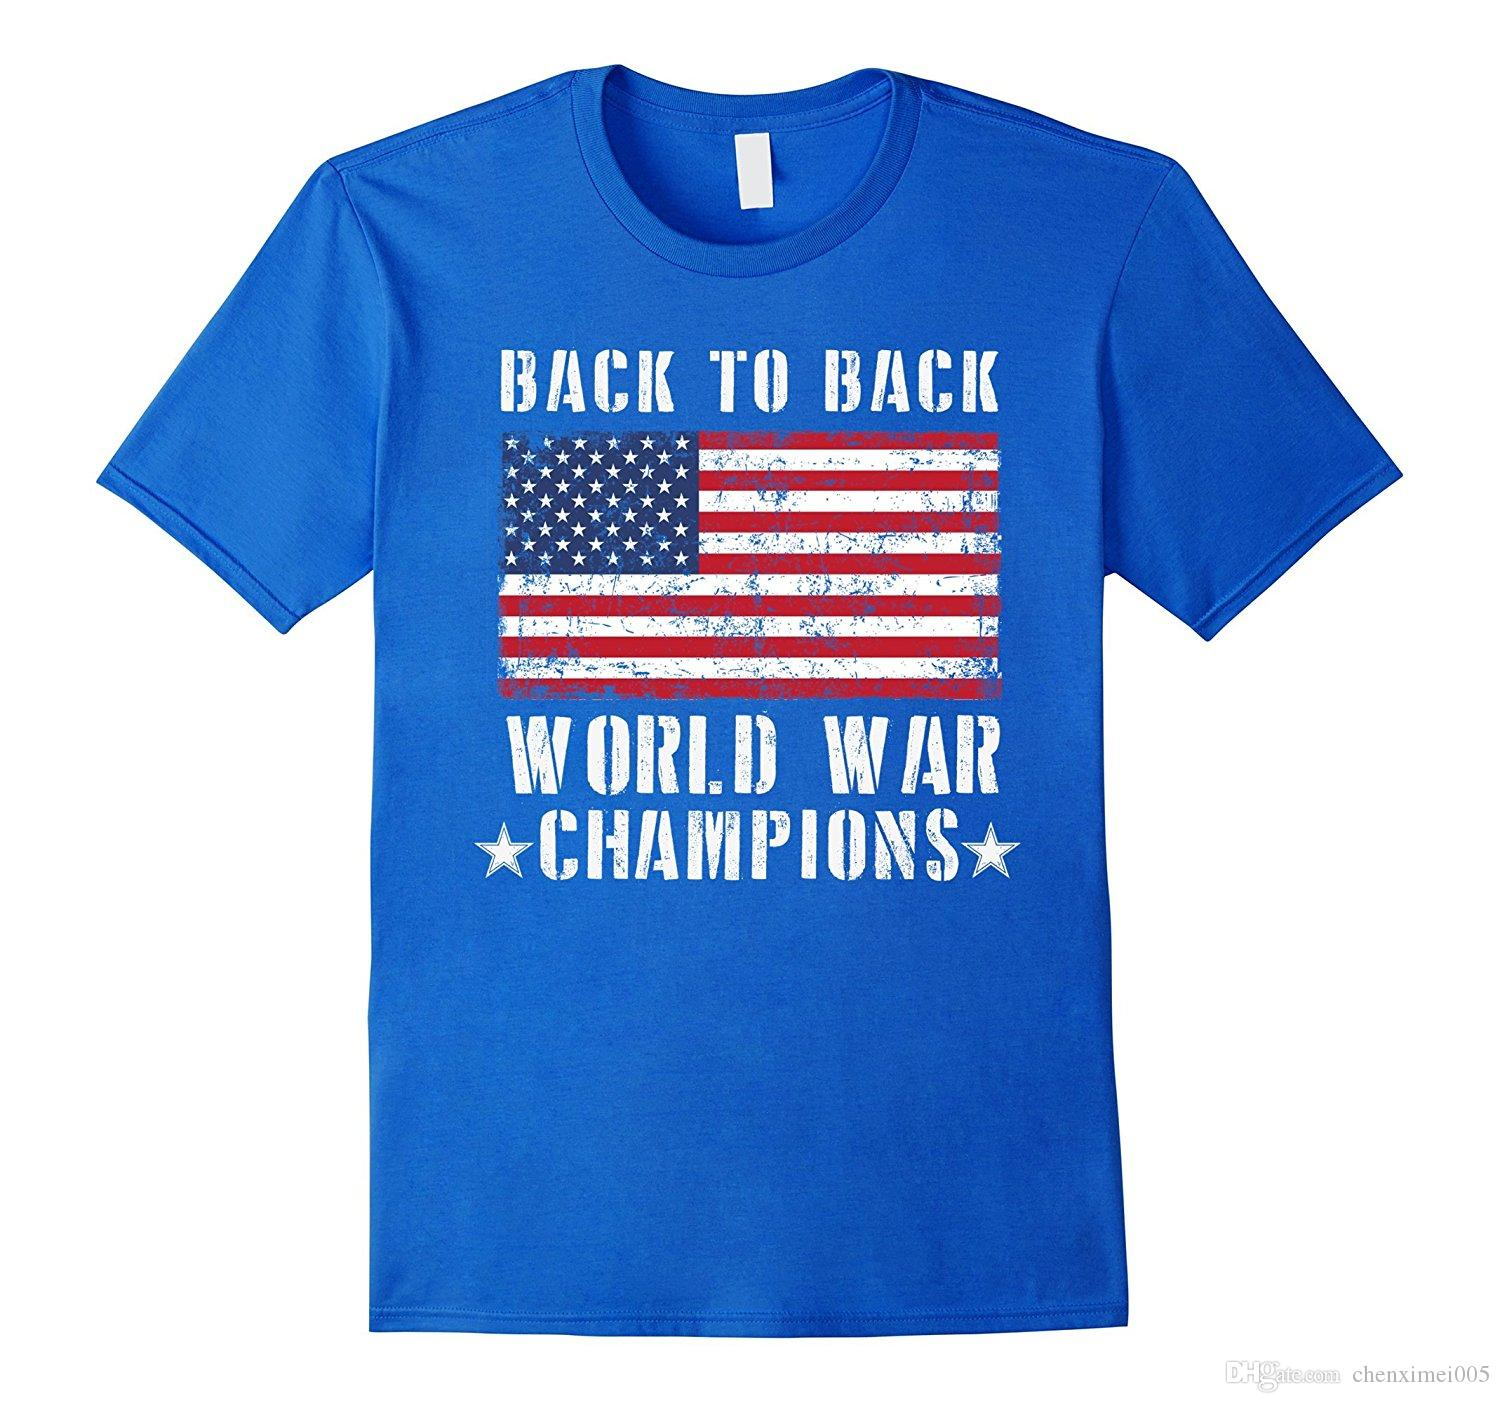 927d0da4f Back To Back World War Champions T Shirt Patriotic USA Tee Tee Shirt Online  Shopping 24 Hour Tee Shirts From Chenximei005, $14.21| DHgate.Com